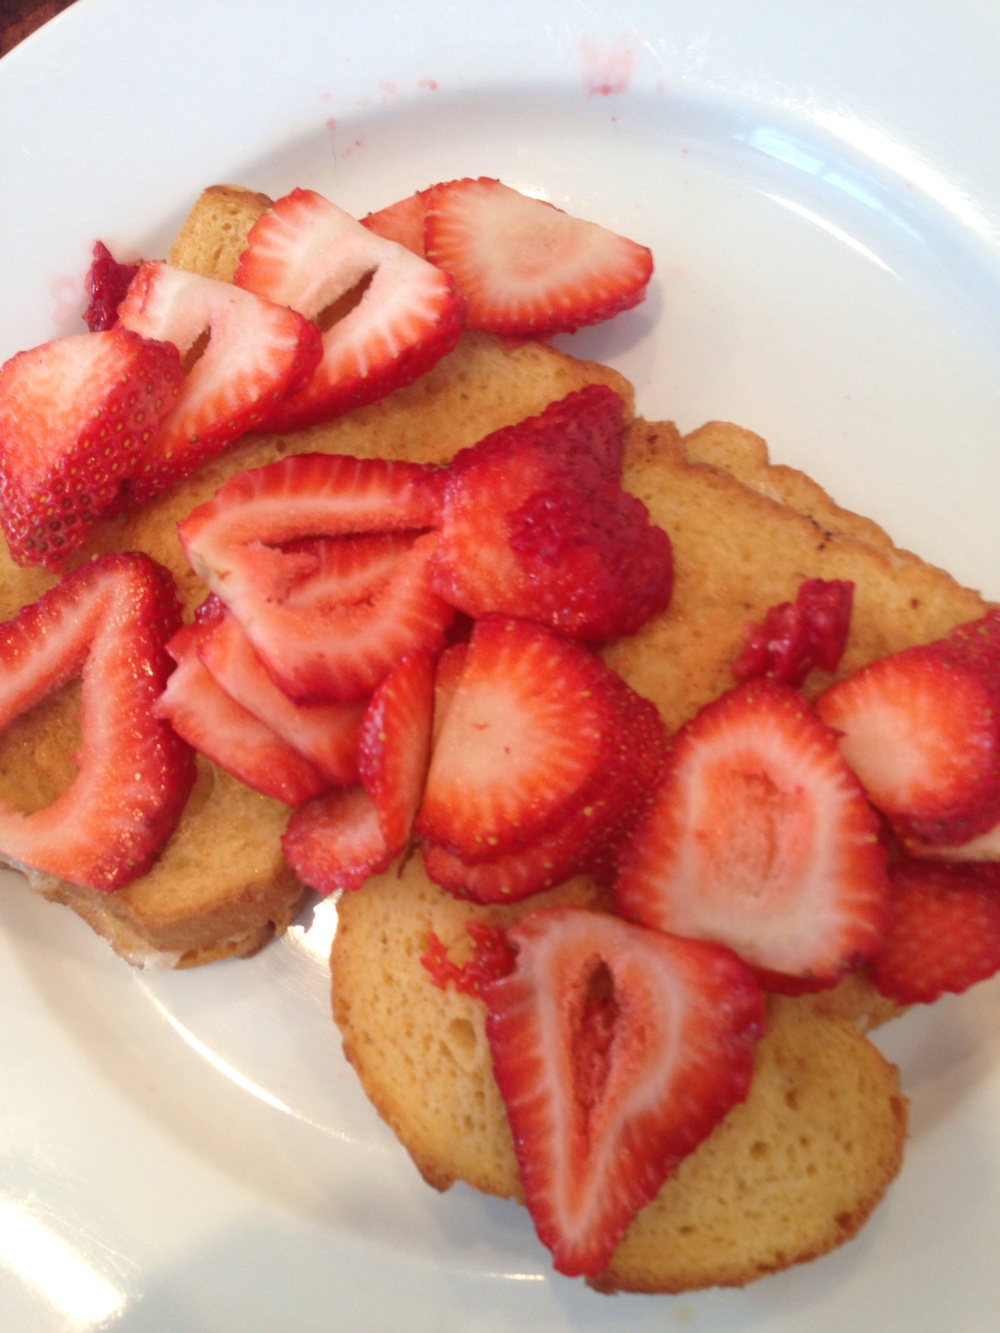 Vegan French Toast with cream and strawberries